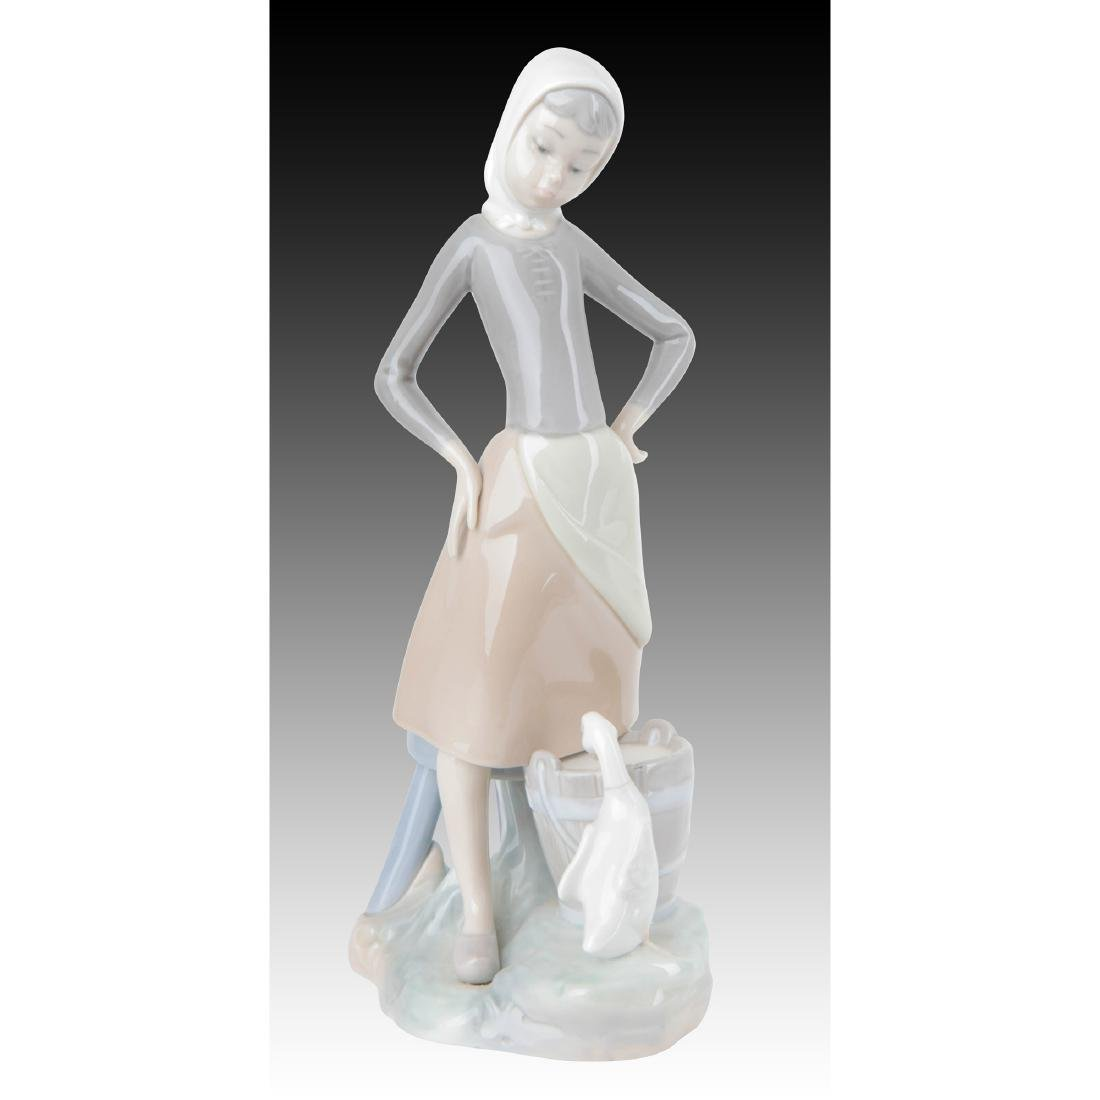 LLADRO GIRL WITH MILK PAIL FIGURINE 4682 RETIRED